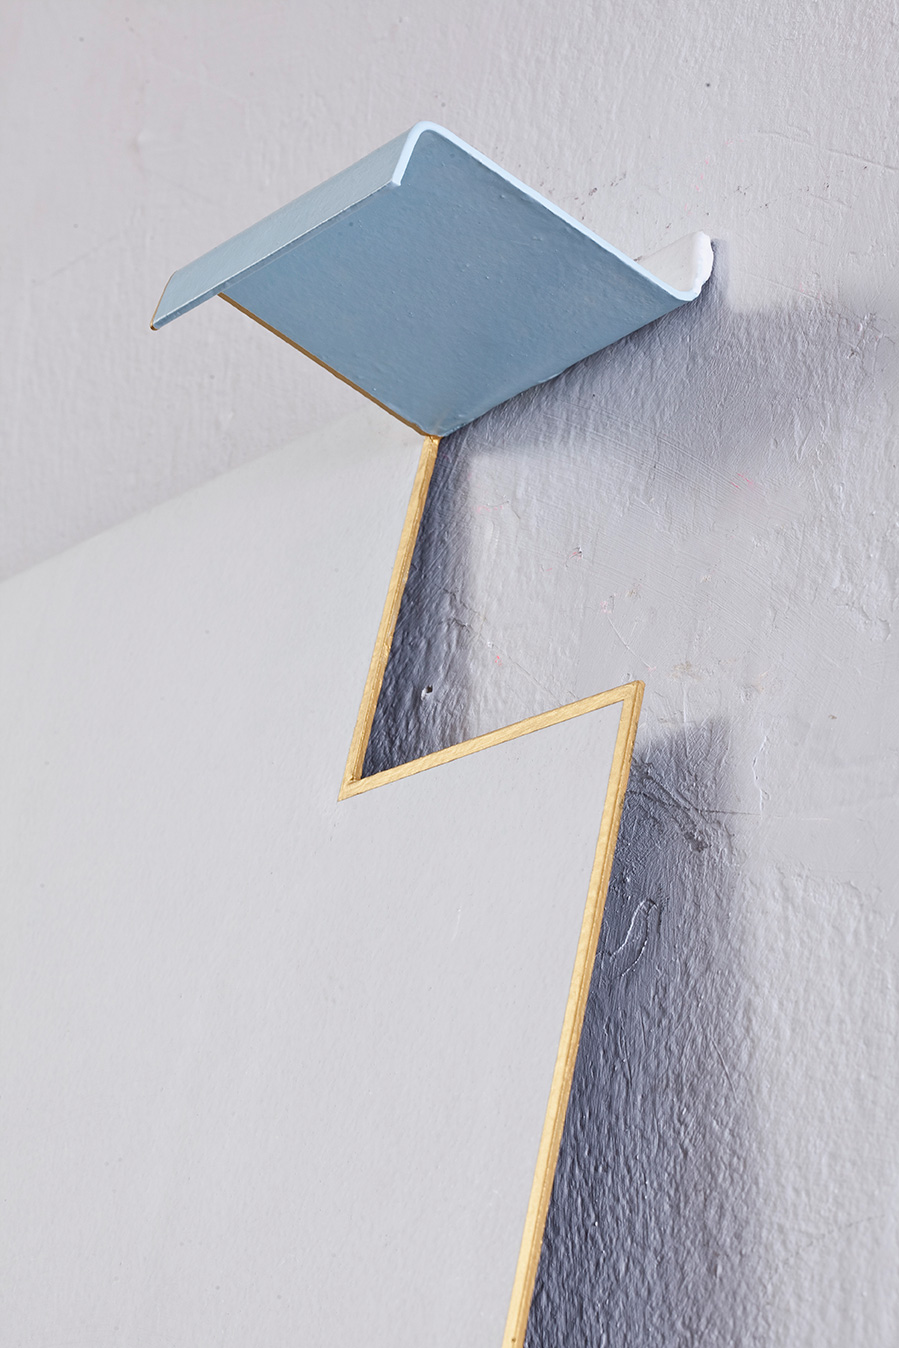 11.%22Untitled%22, 2015, acrylic and epoxi color on metal sheet,110x100cm_detail 4.jpg